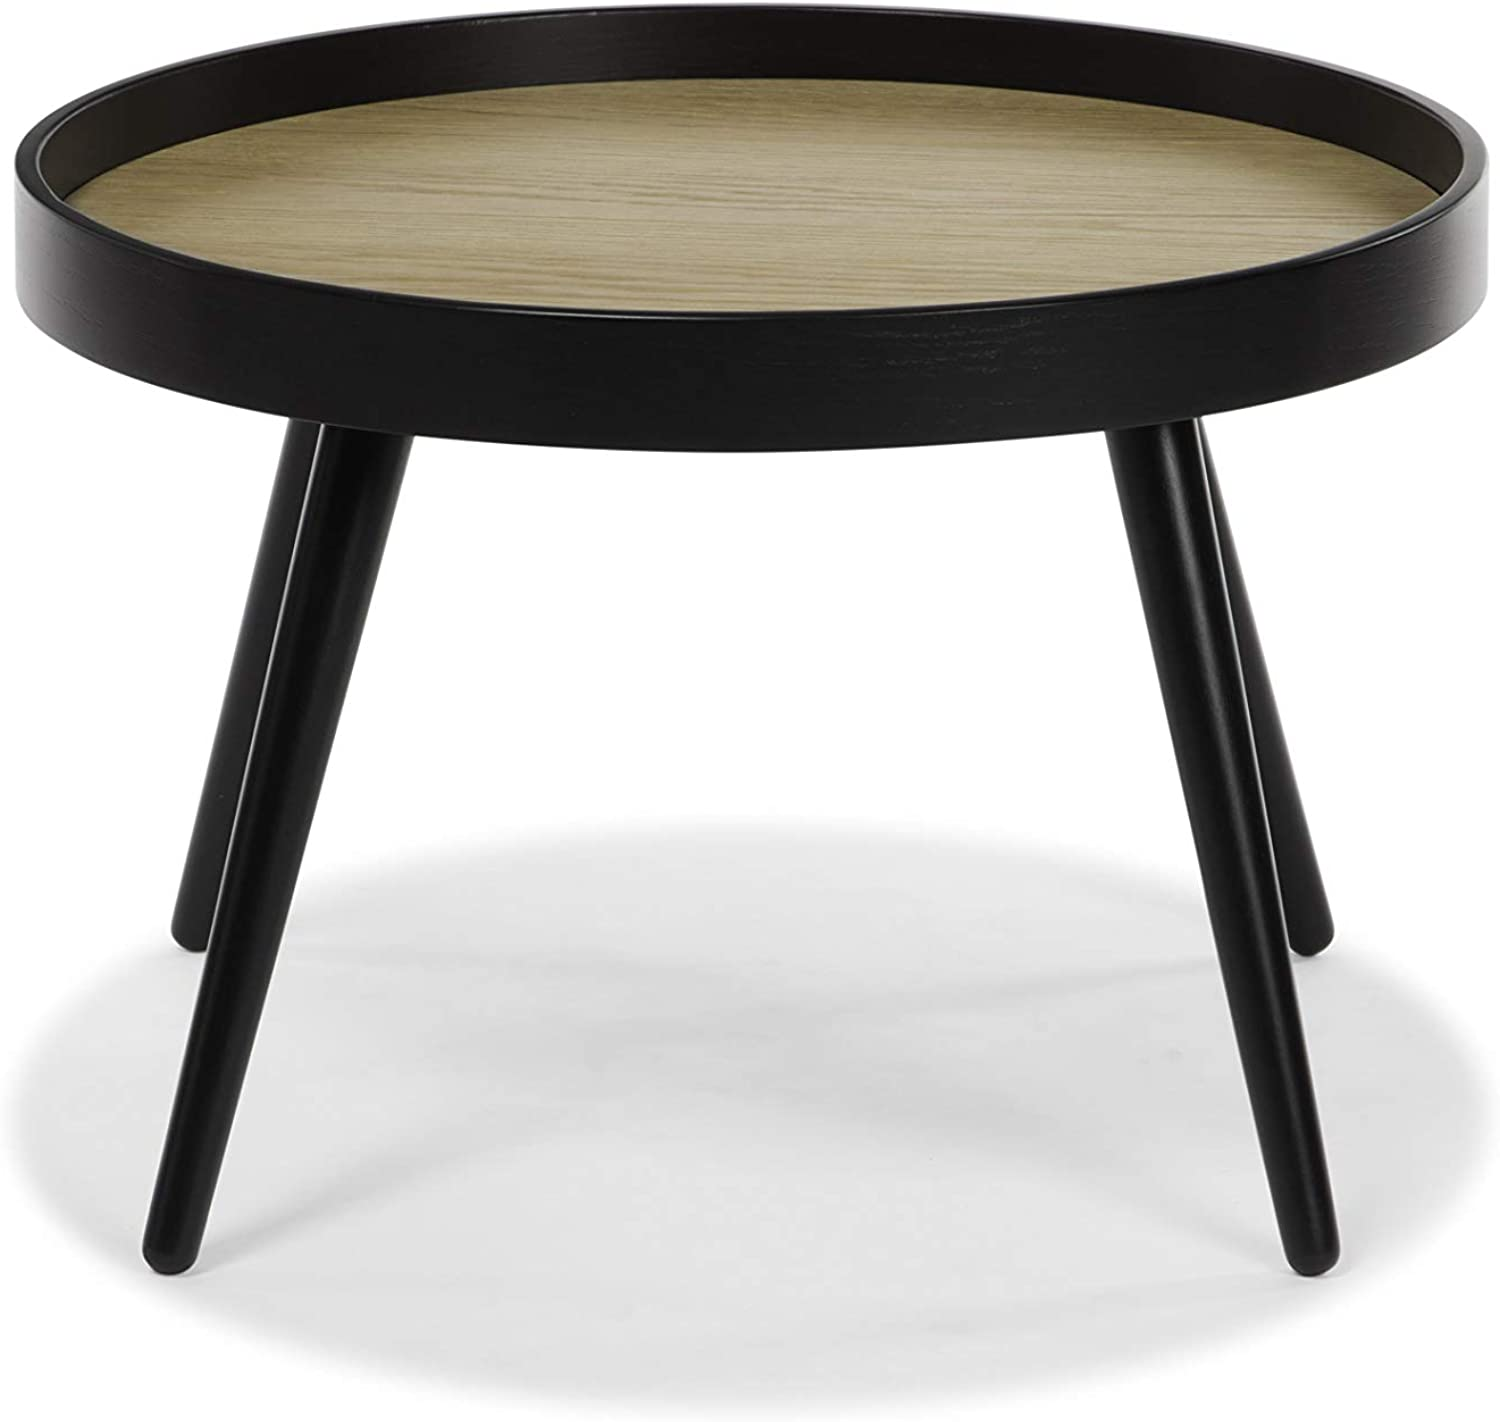 Hensen Mid-Century Modern Round Black Accent Table  use as End, Side, Bedside, or Mini-Coffee Table